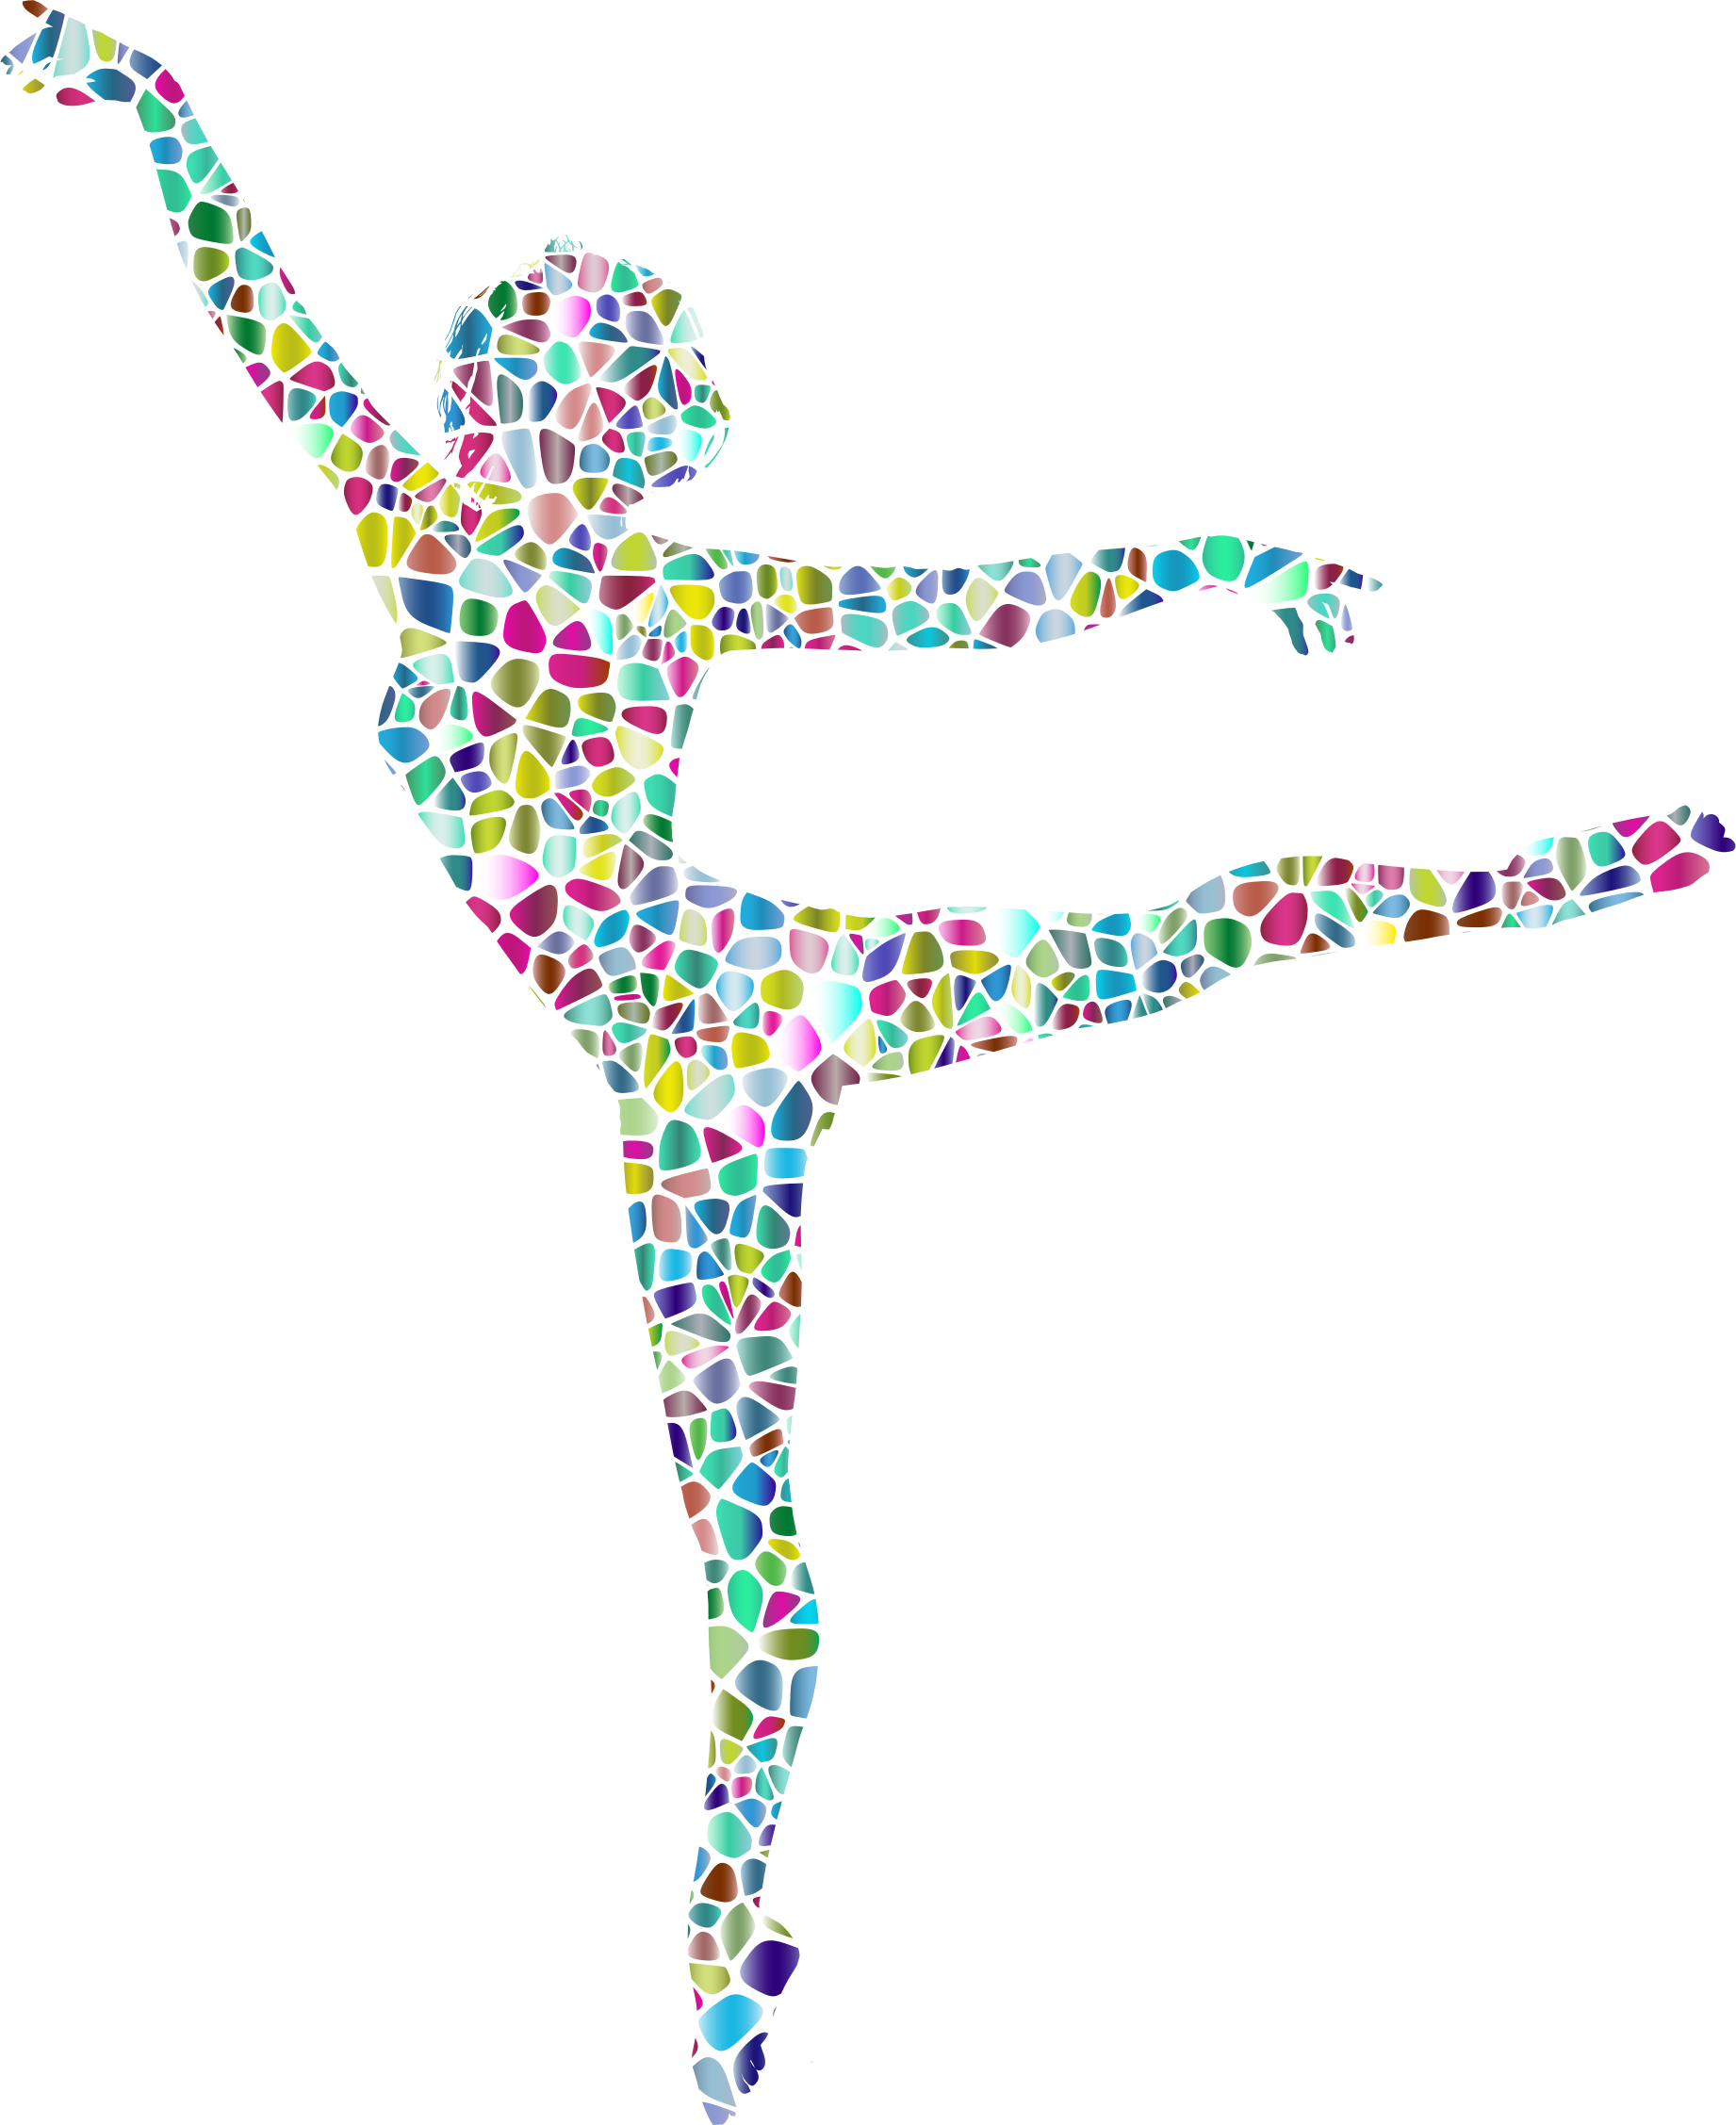 Polychromatic tiled lithe dancing. Dancer clipart abstract